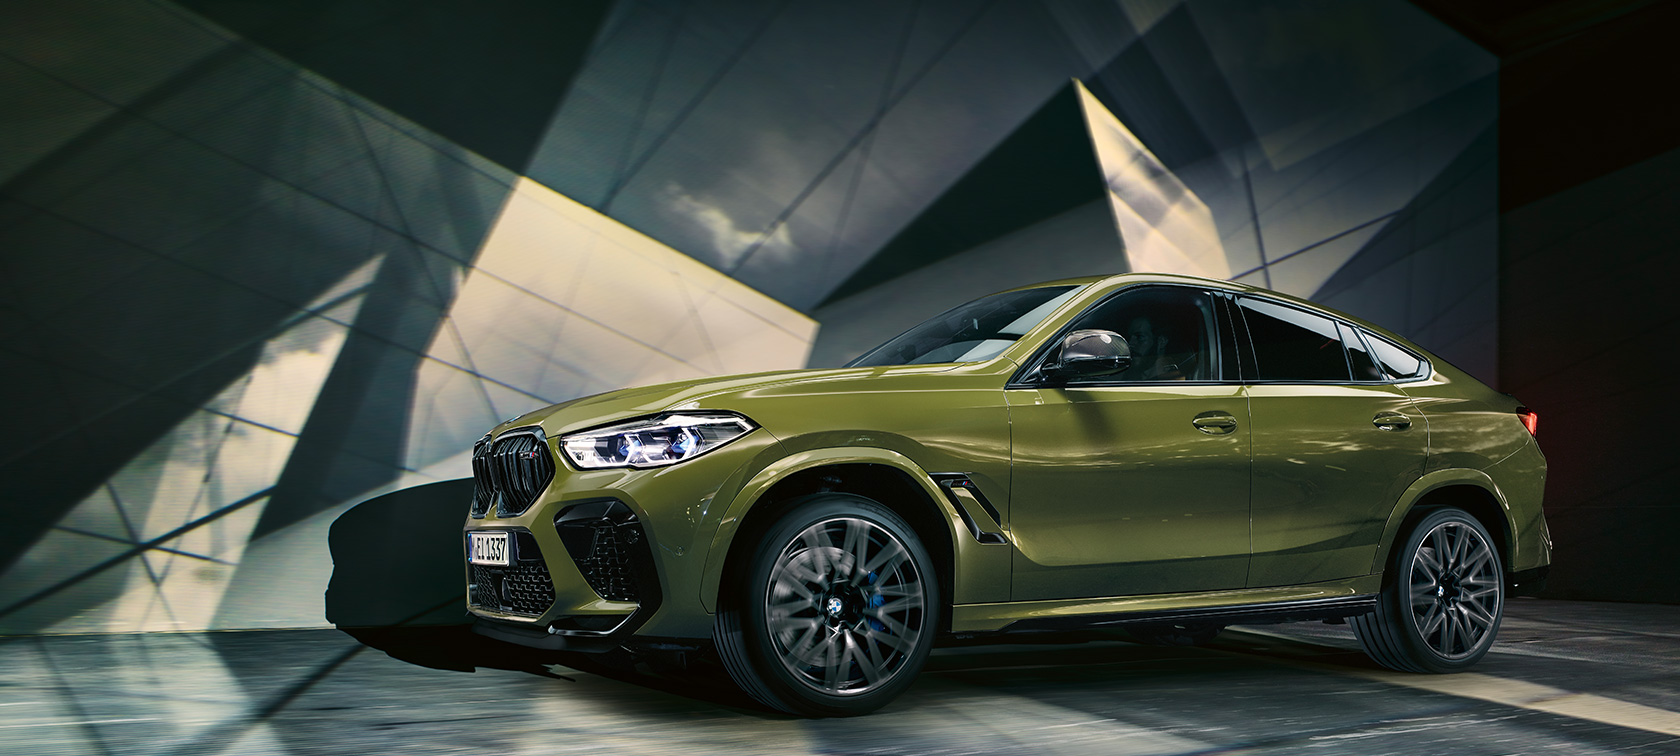 The all-new BMW X6 M Automobiles BMW Individual Special Paint Urban Green F96 2020